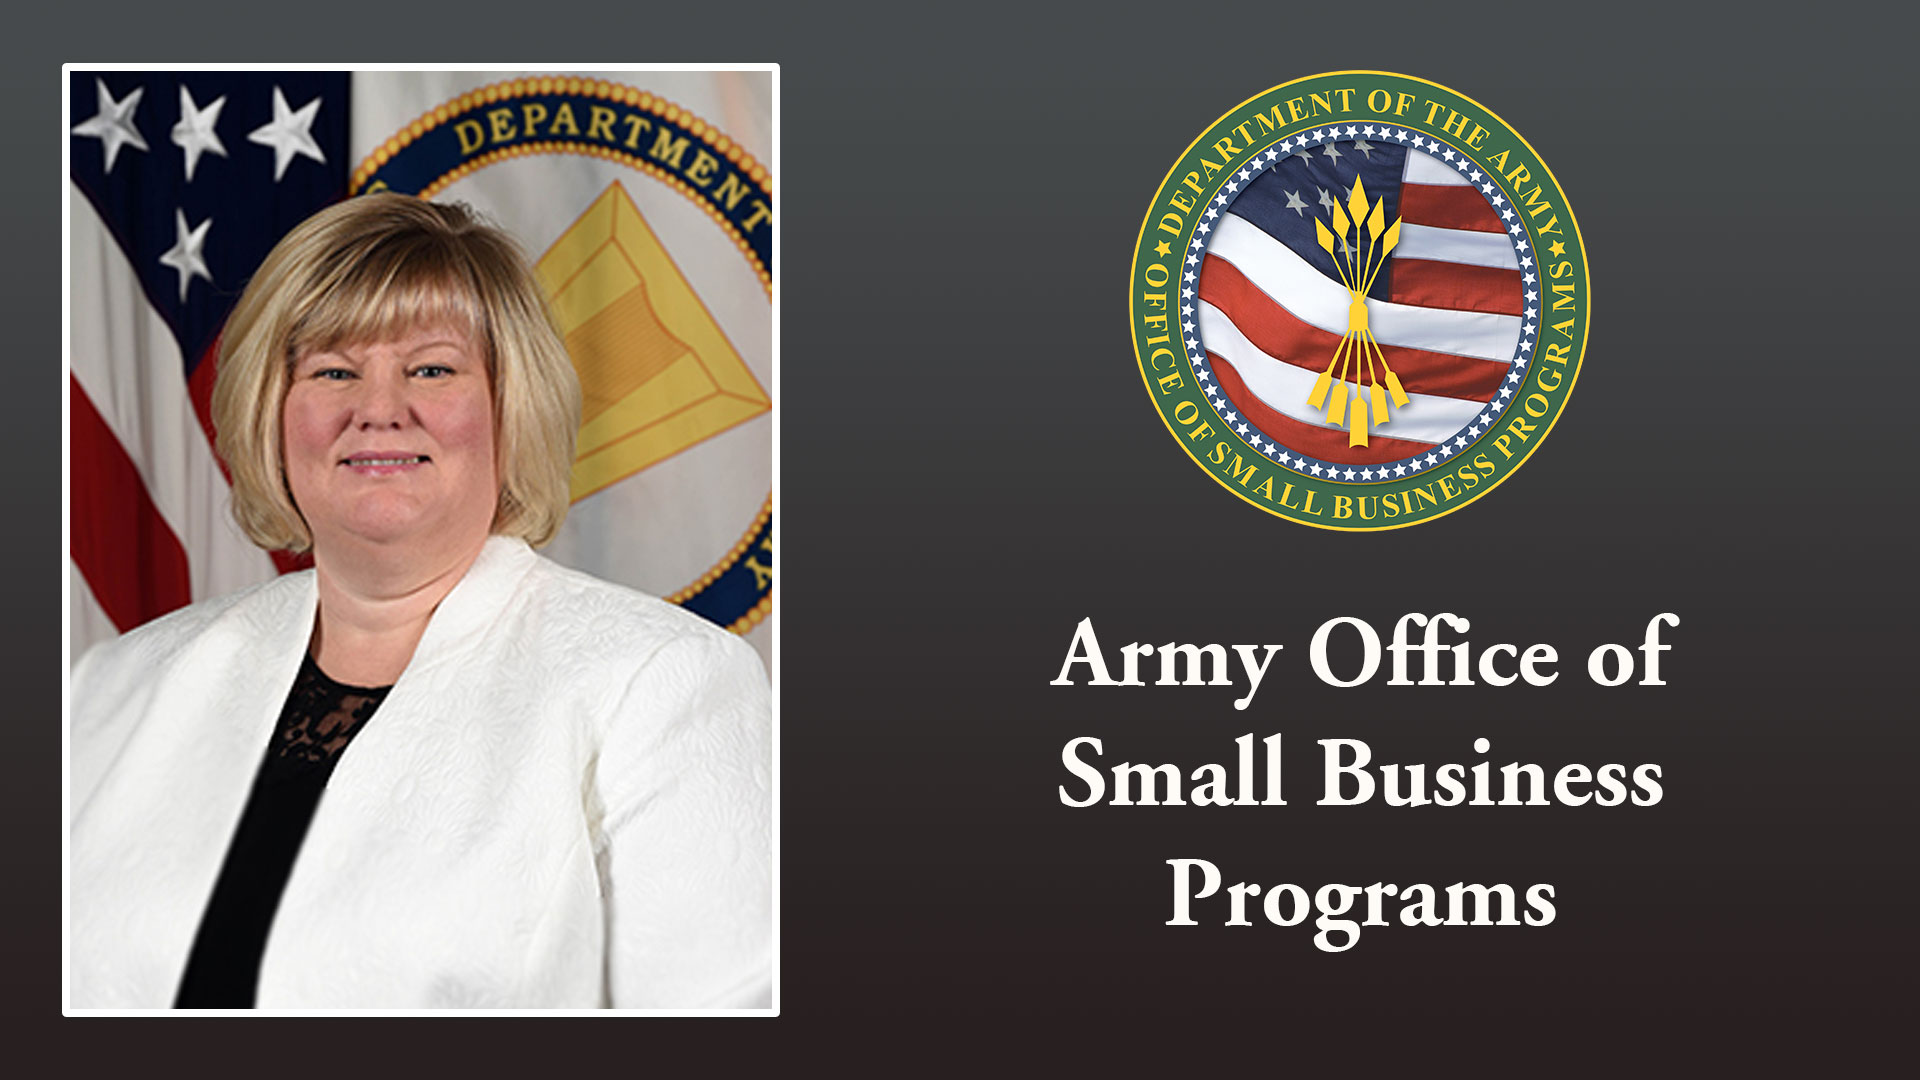 Army Office of Small Business Programs